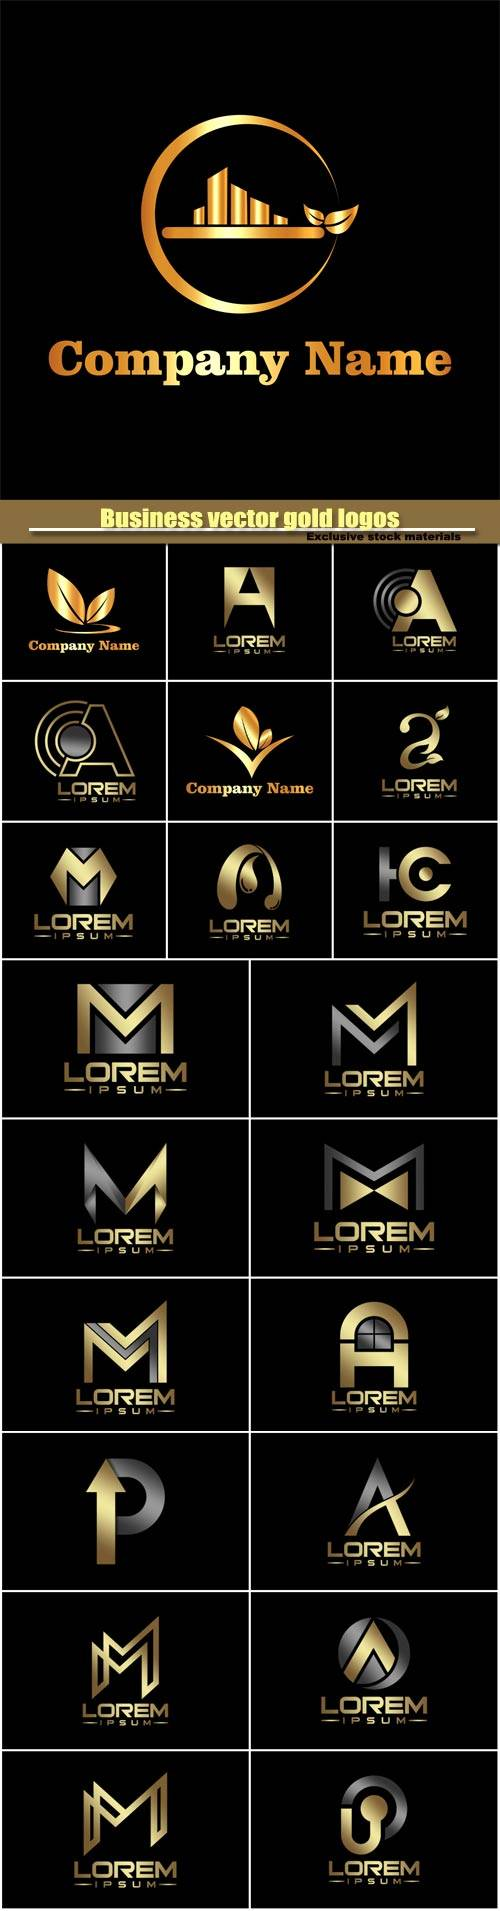 Business vector gold logos templates, creative figure icon